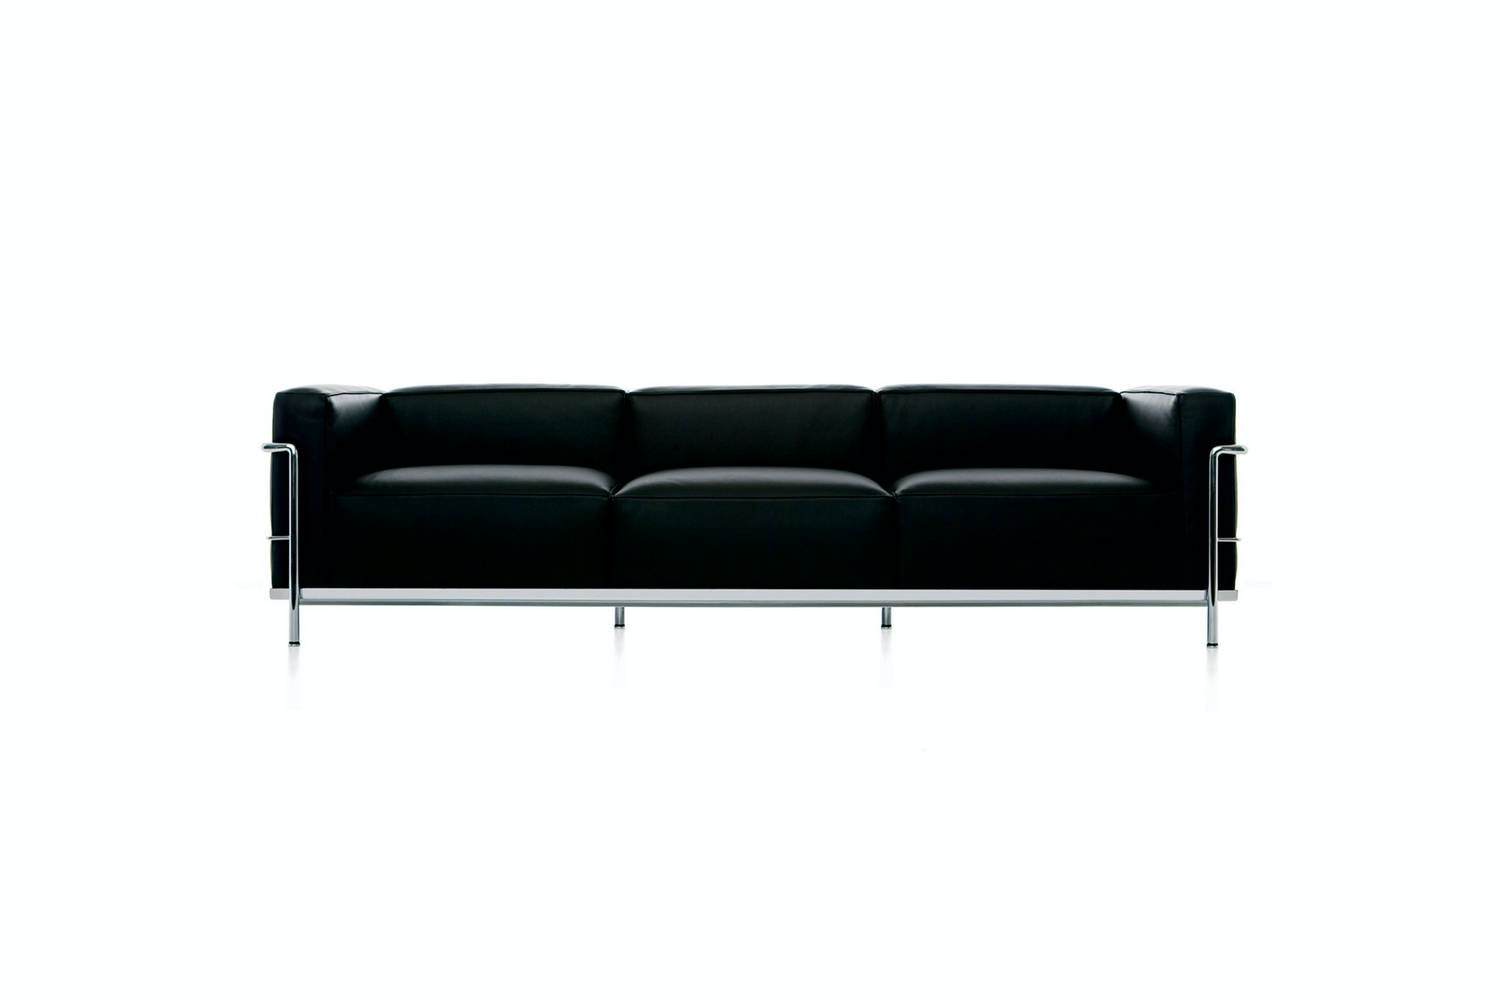 LC3 Sofa by Le Corbusier, Pierre Jeanneret, Charlotte Perriand for Cassina